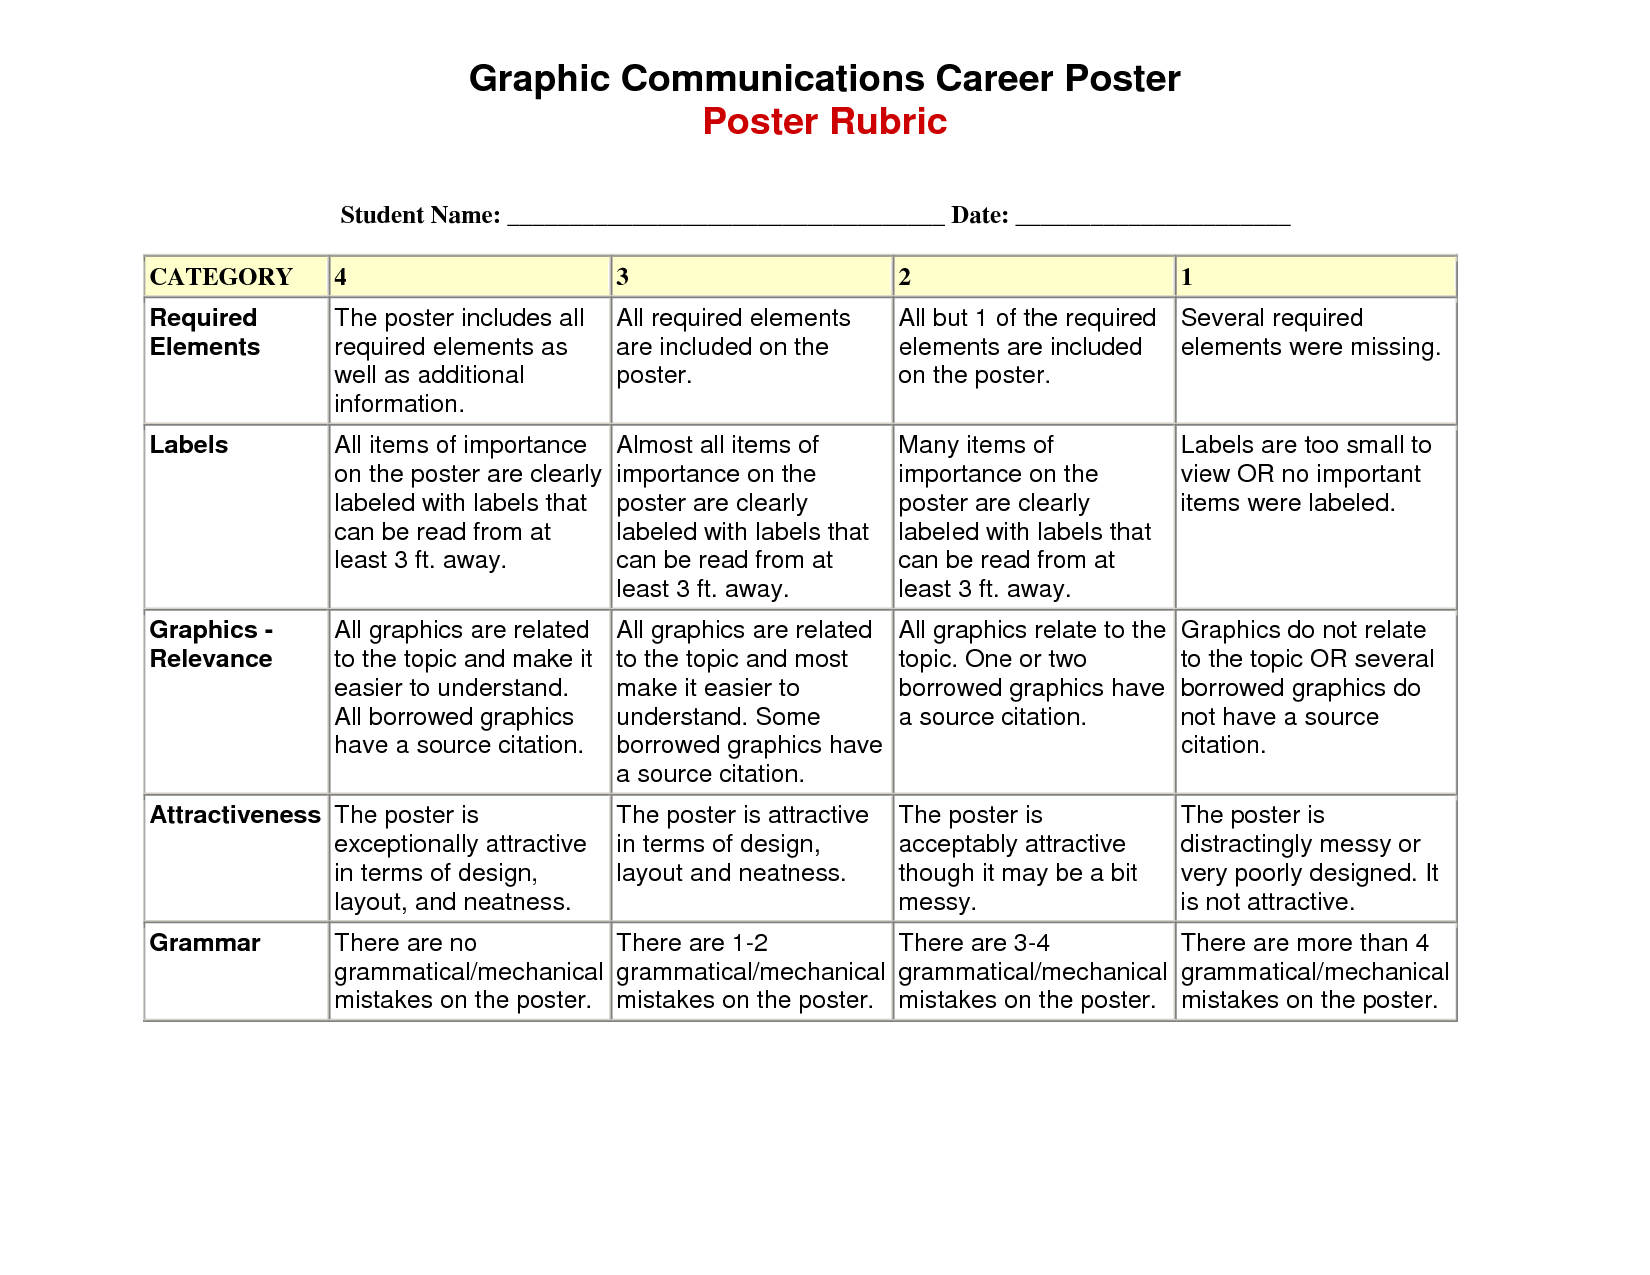 Rubric for a poster design - Life Skills